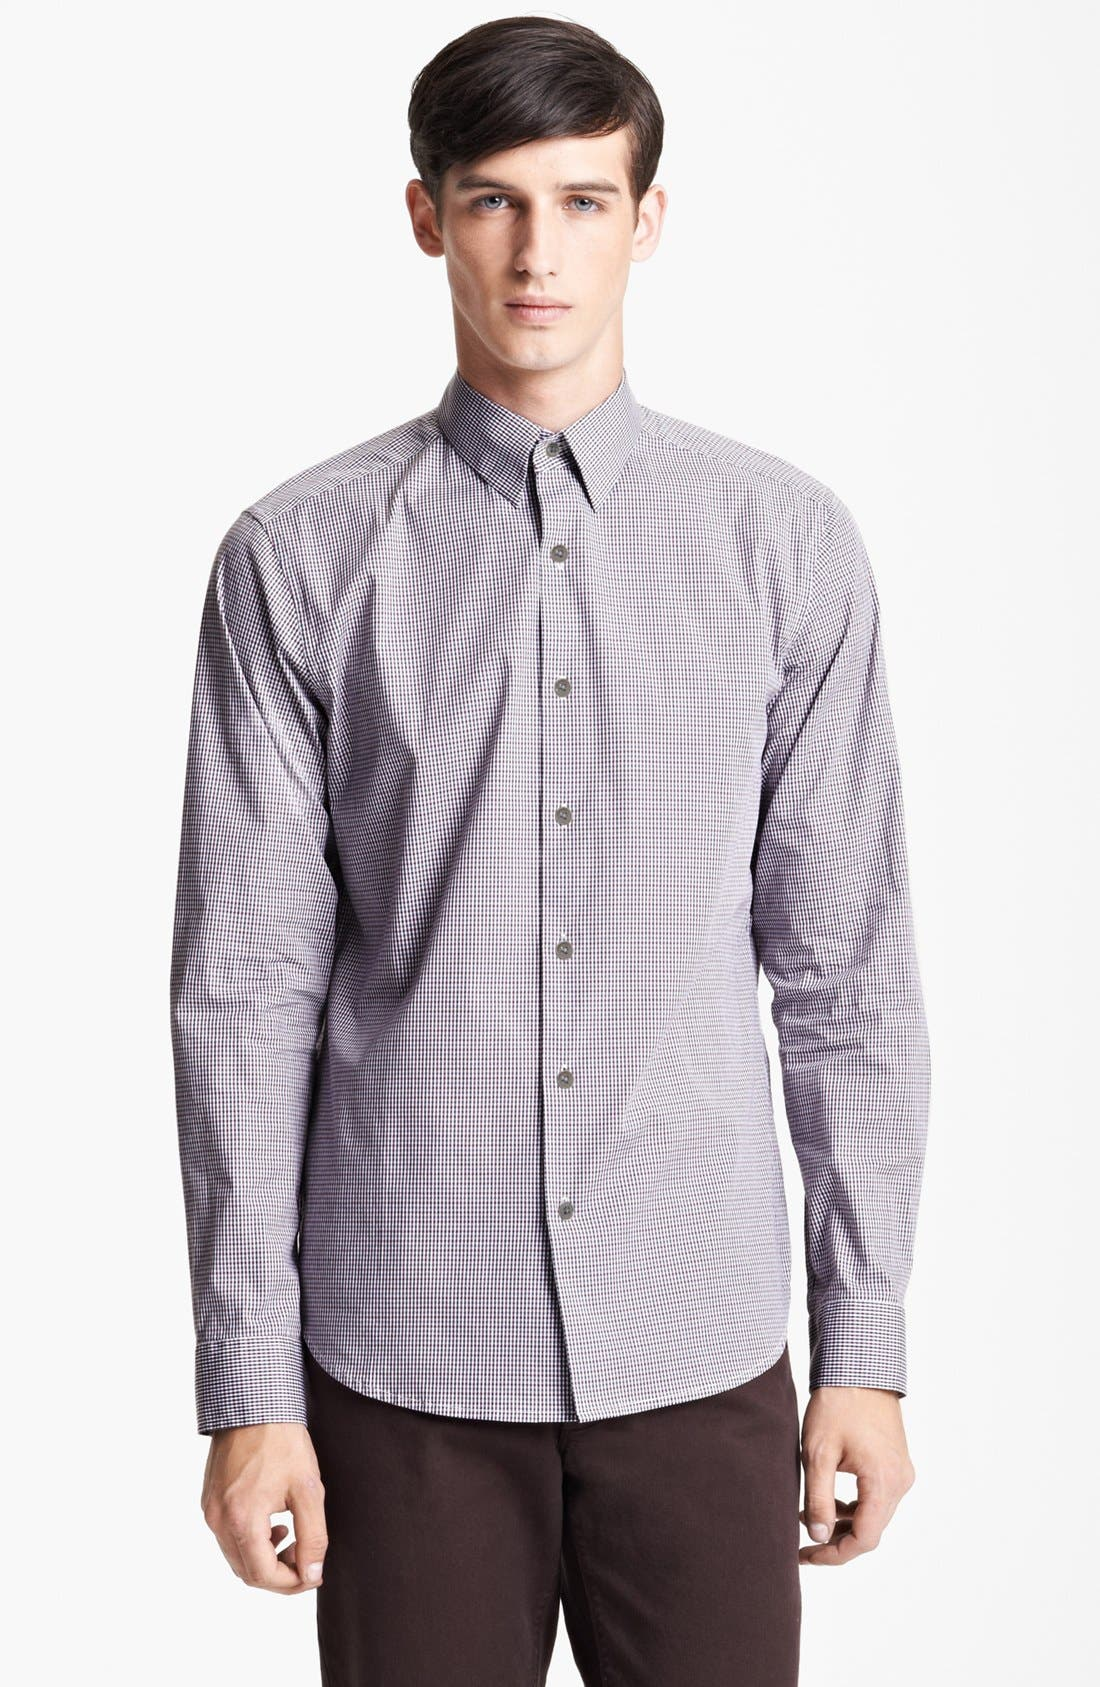 Alternate Image 1 Selected - Theory 'Accolade' Woven Shirt